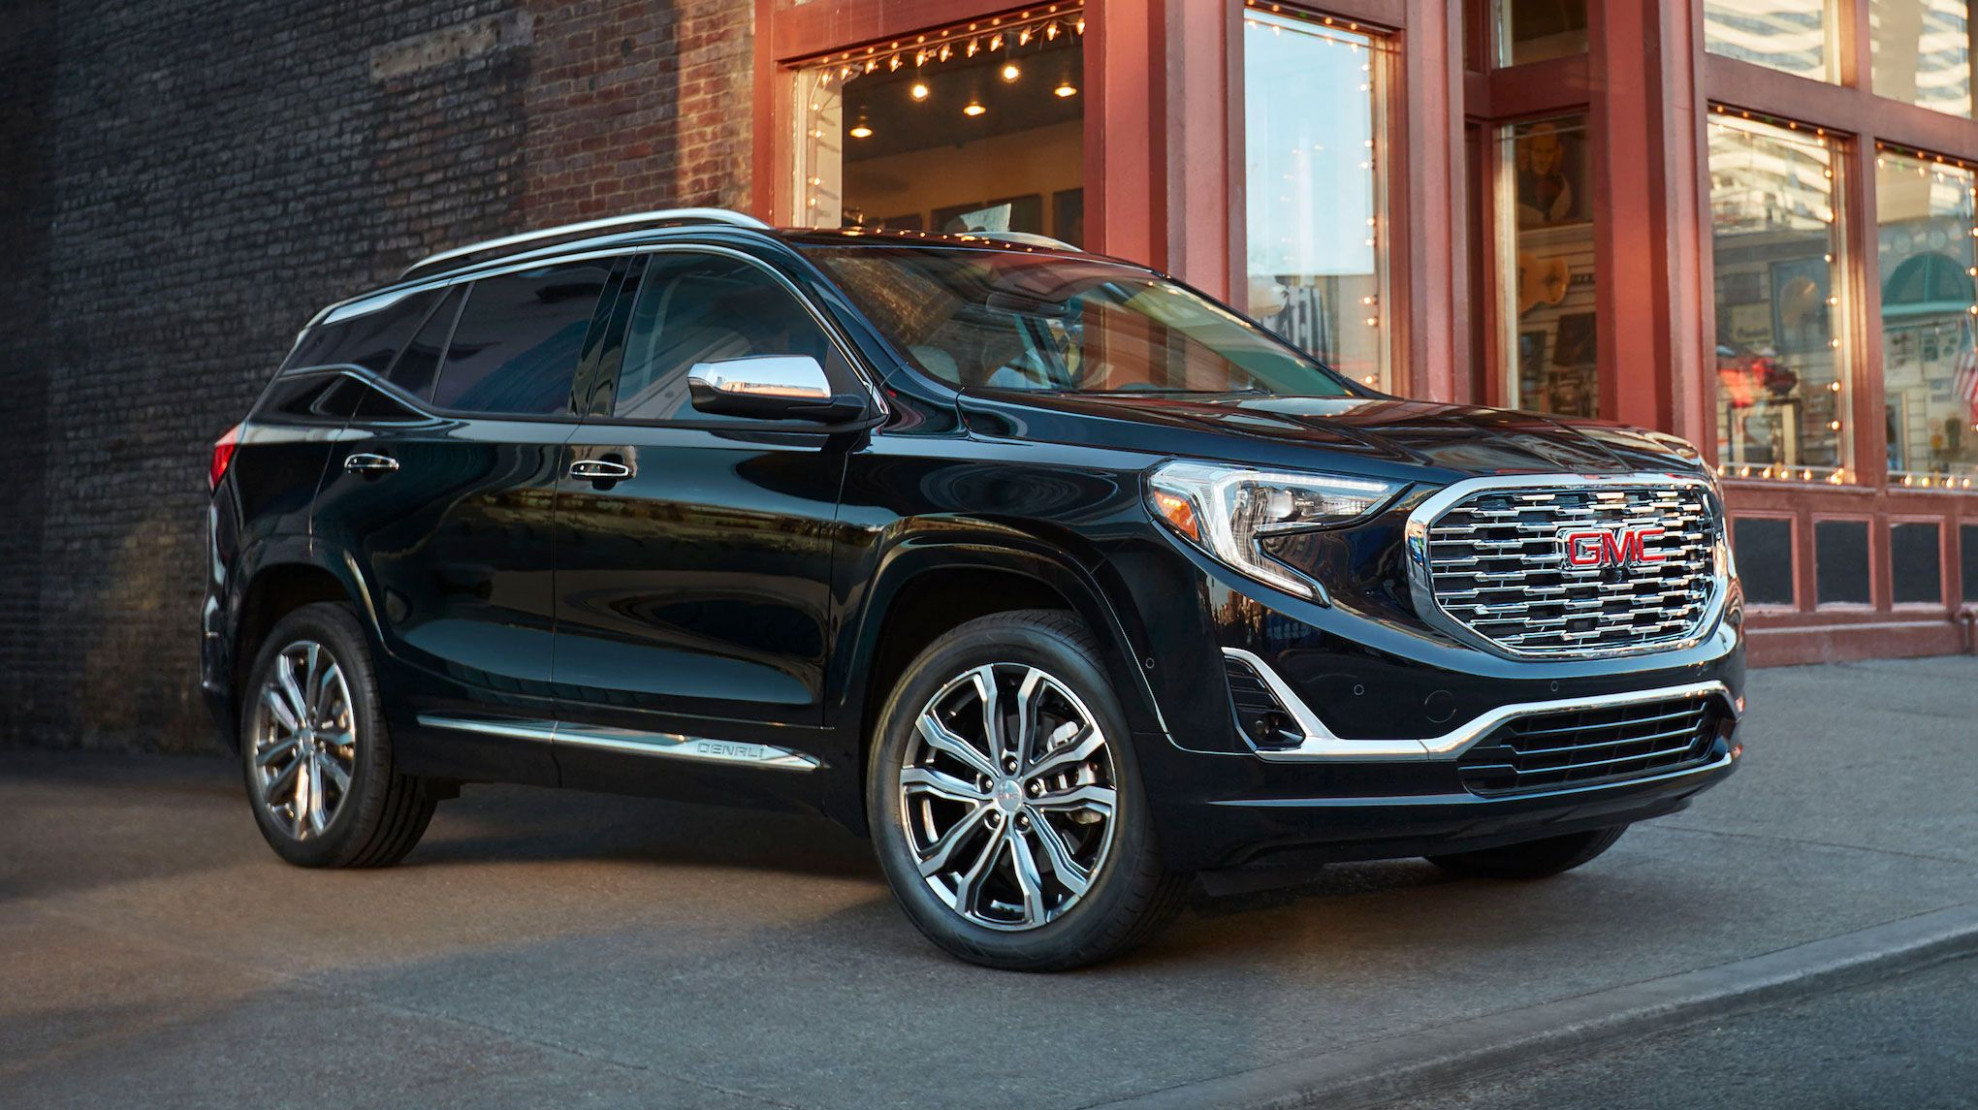 7 GMC Terrain Review, Pricing, and Specs